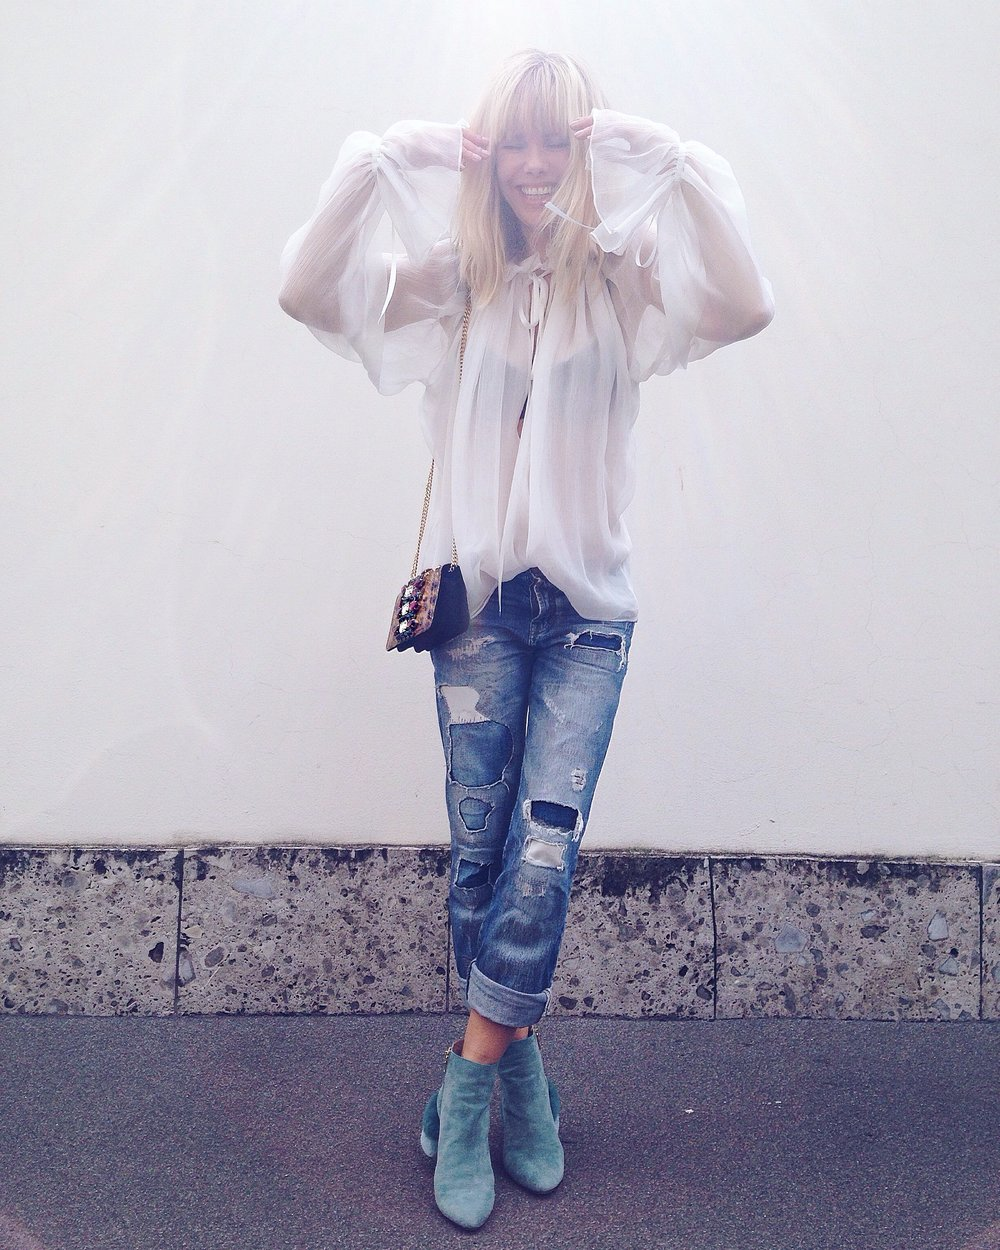 REDEMPTION blouse, Vintage jeans, SEBASTIAN boots and GEDEBE bag